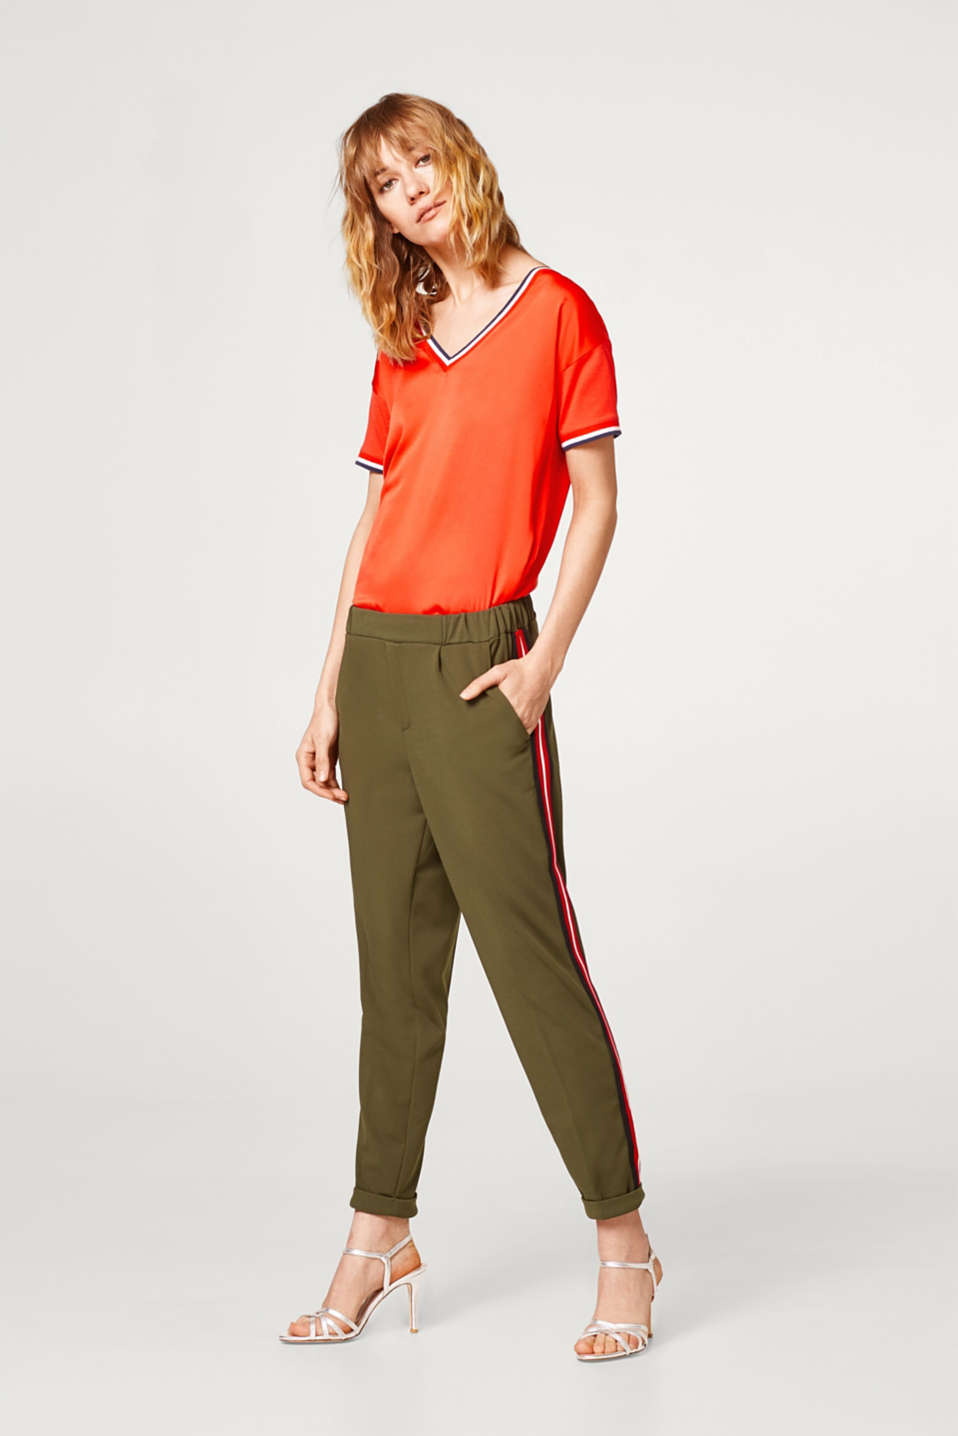 Esprit - Crêpe trousers in a joggers style